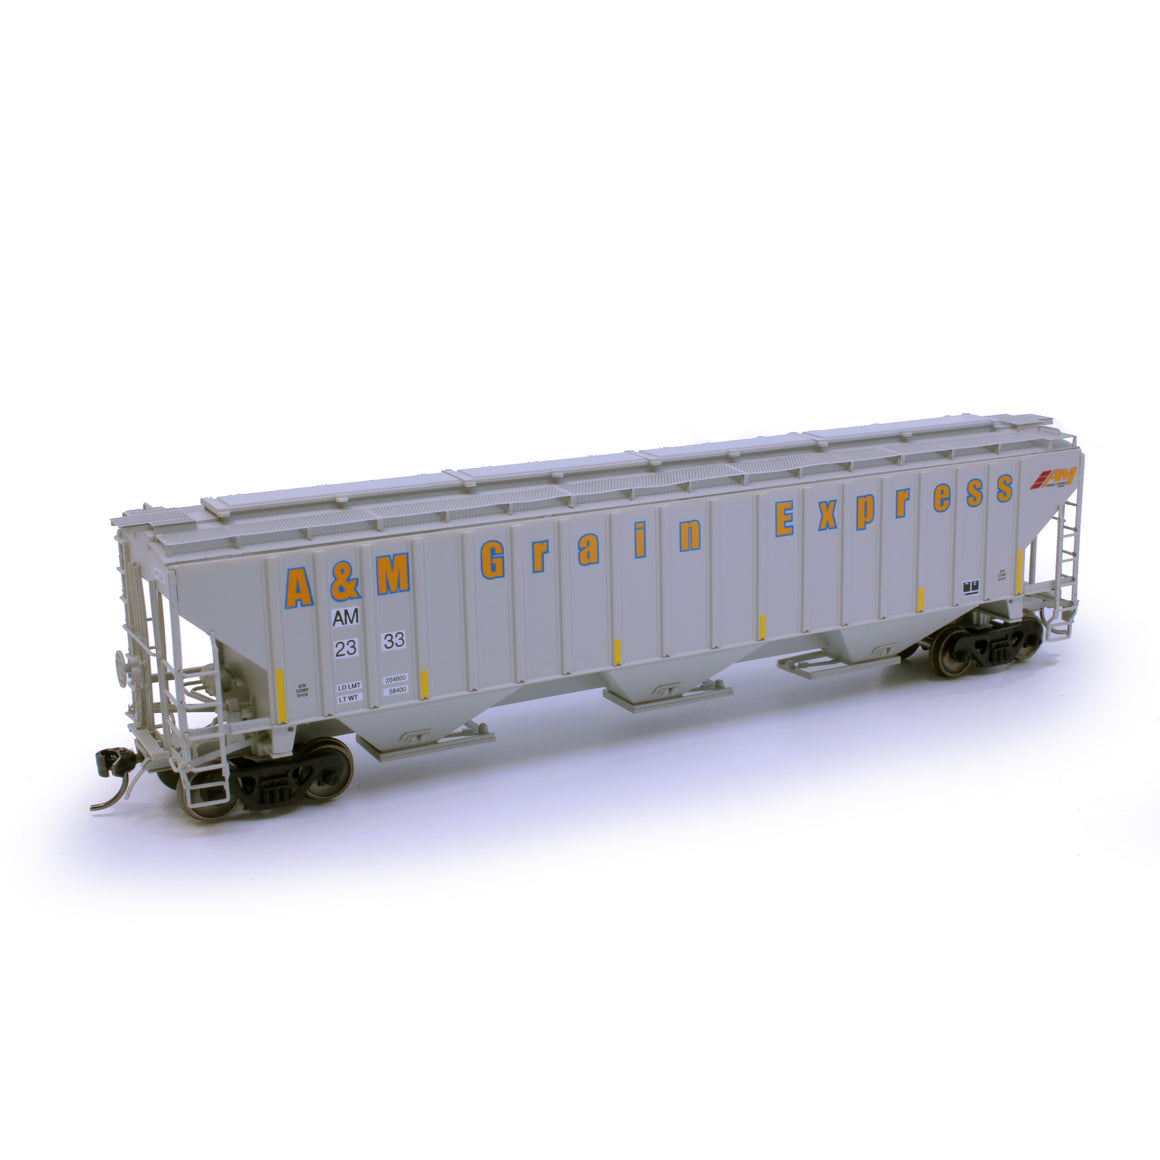 HO Scale: 4750 3-Bay Rib-Sided Covered Hopper - A&M Grain Express